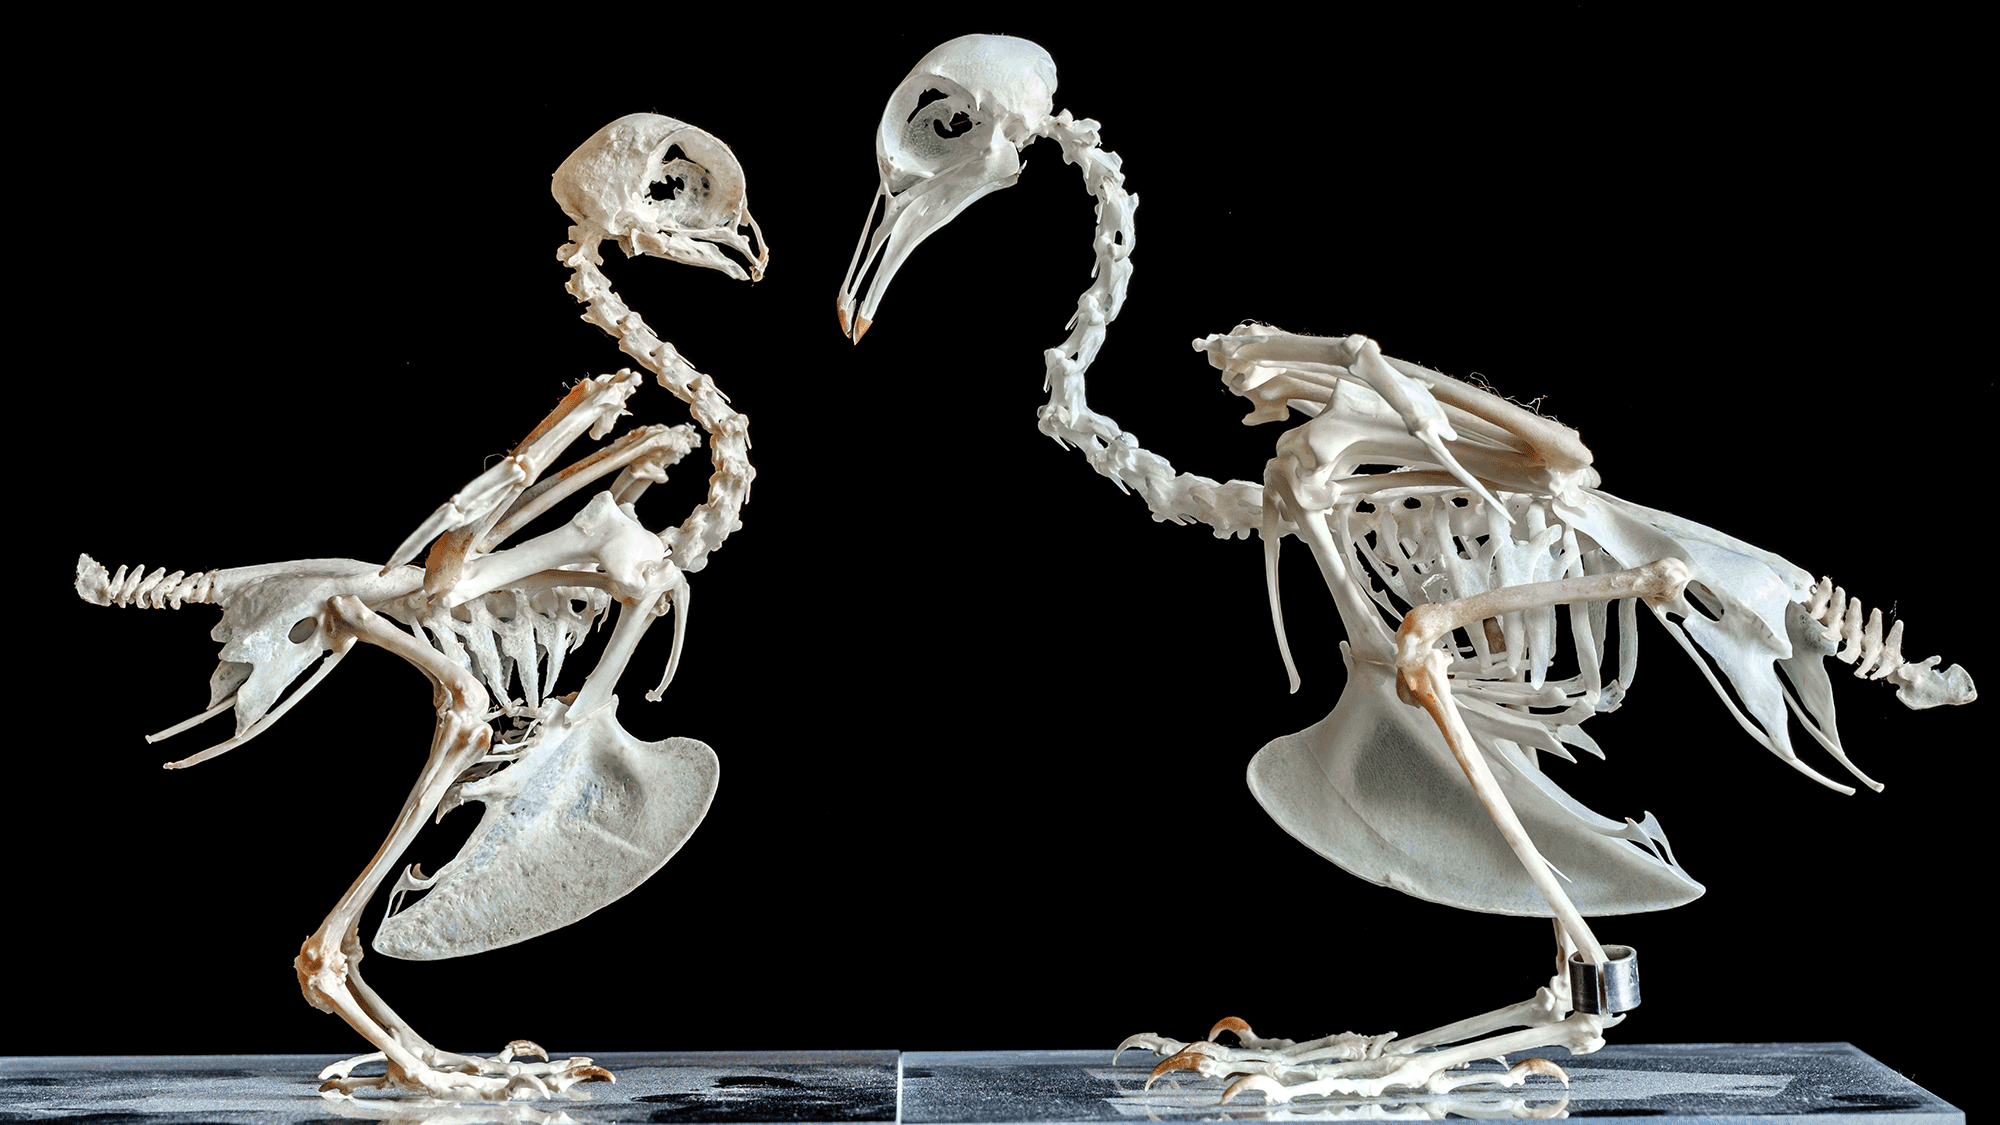 Skeletons of domestic pigeons facing each other. The left skeleton has a short beak, the right one has a long beak.